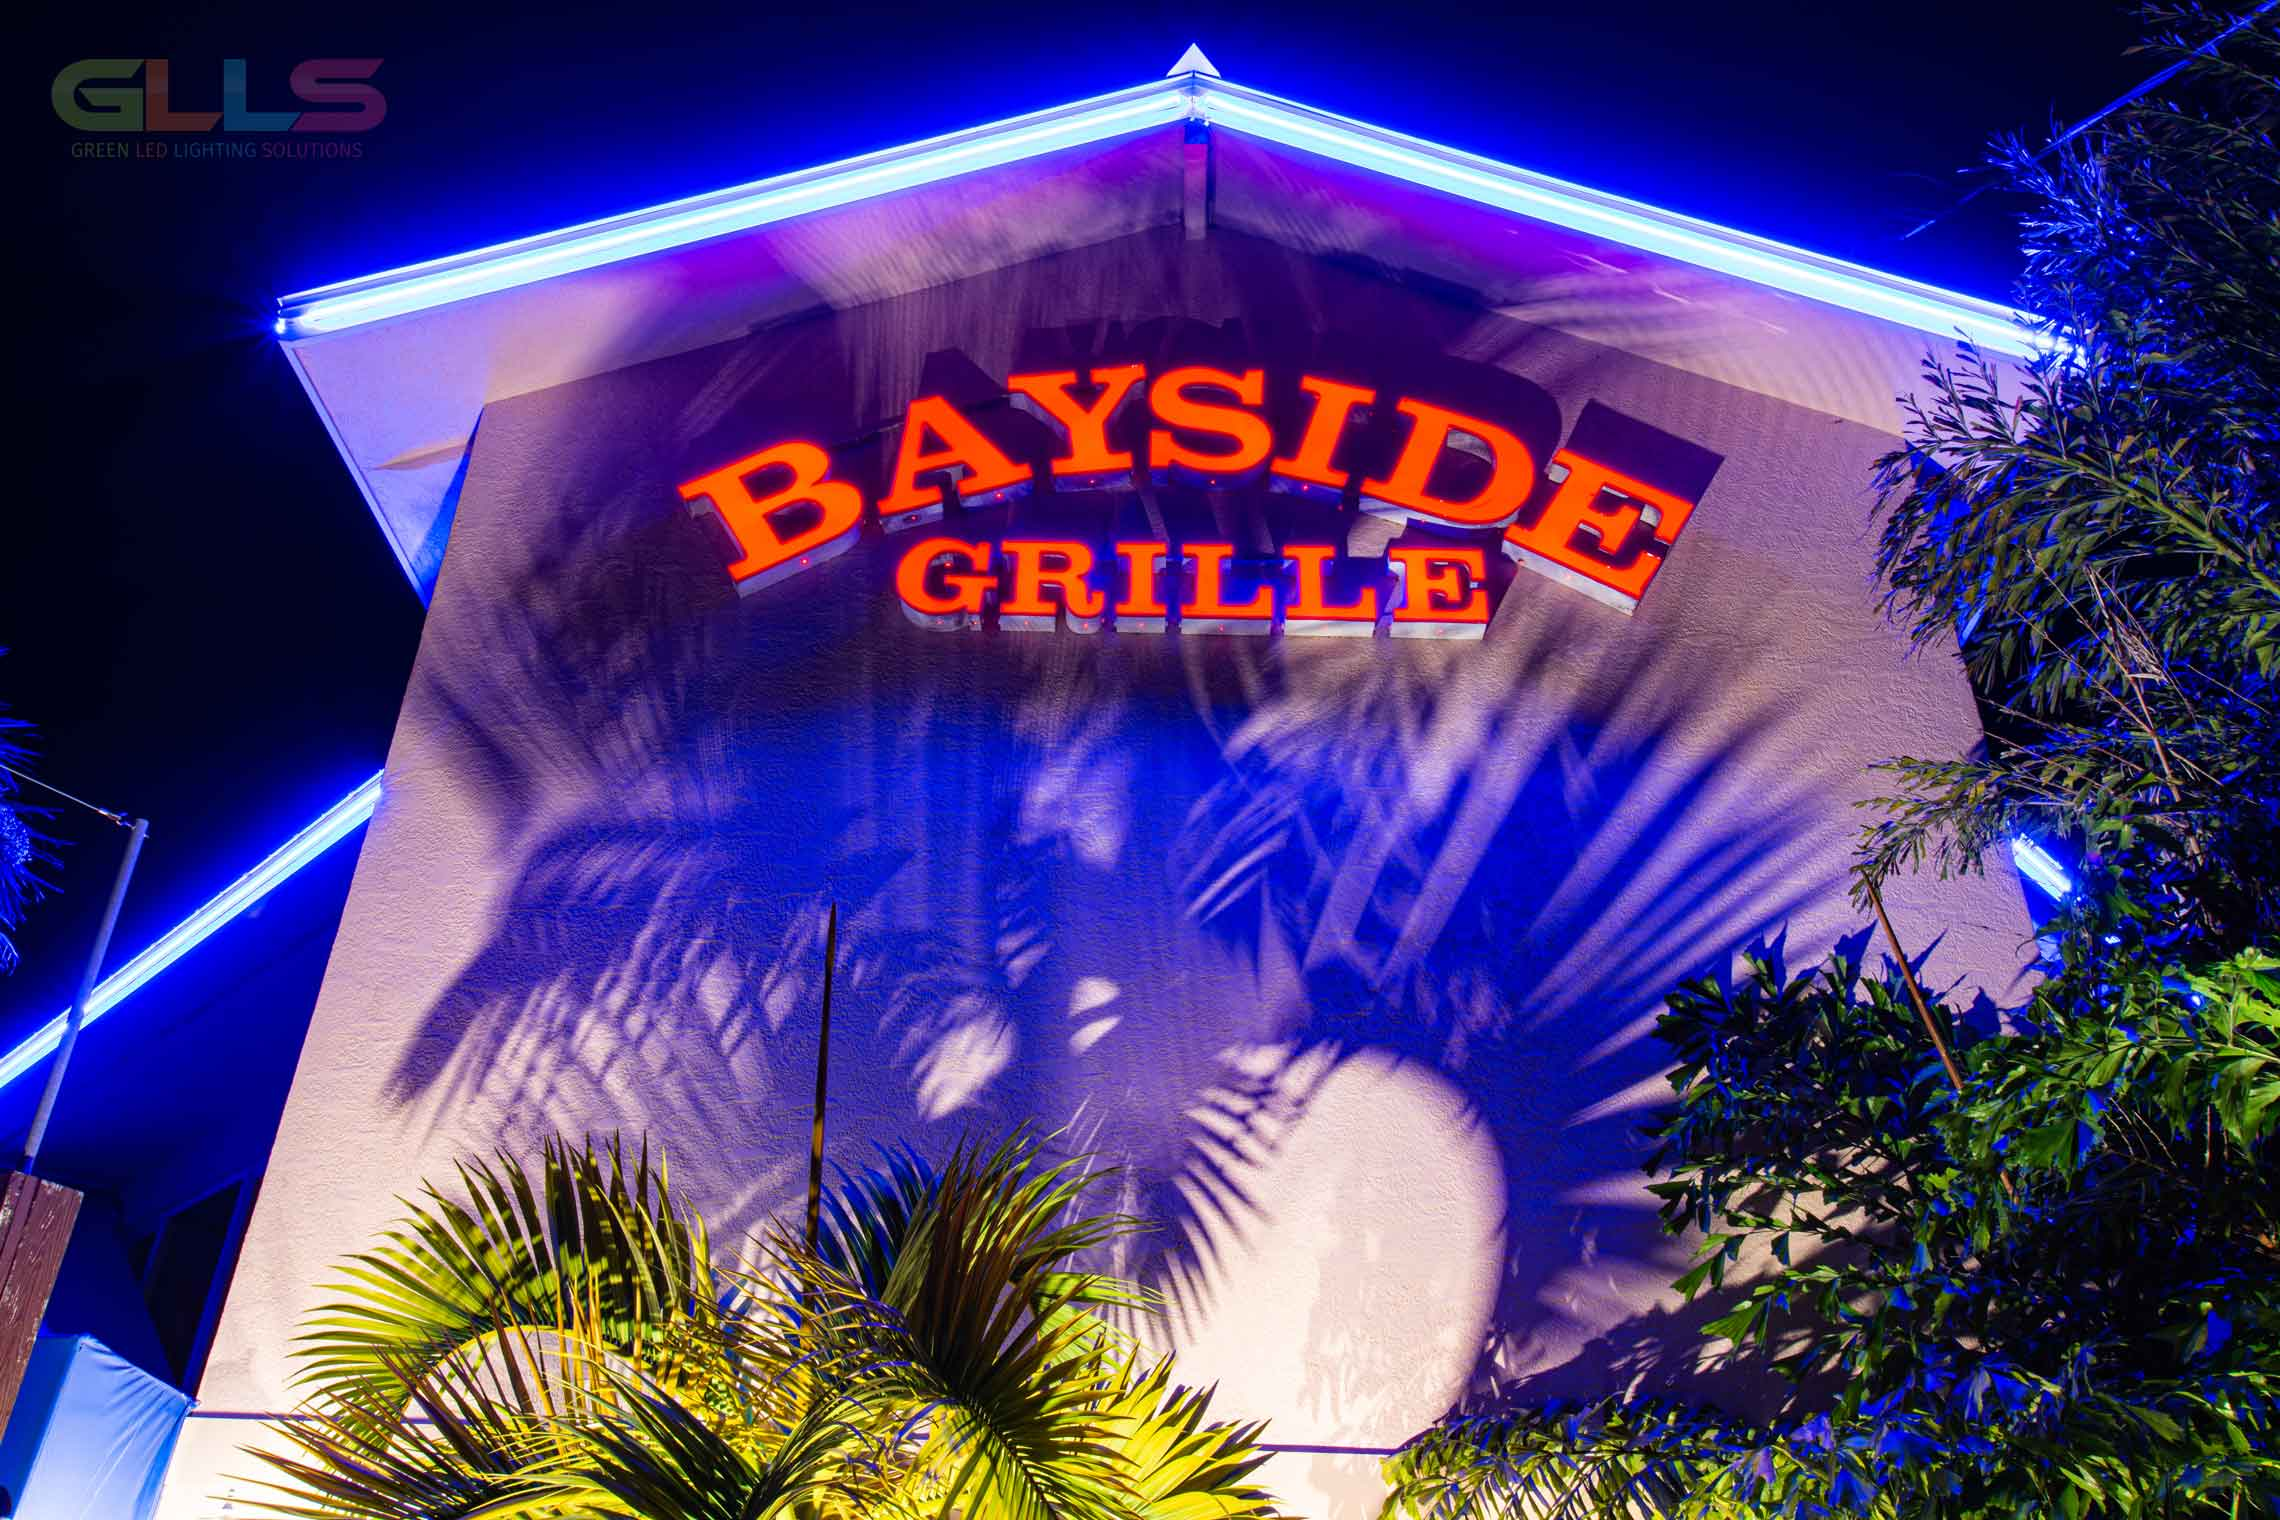 Bayside-Grill-Front-Building10